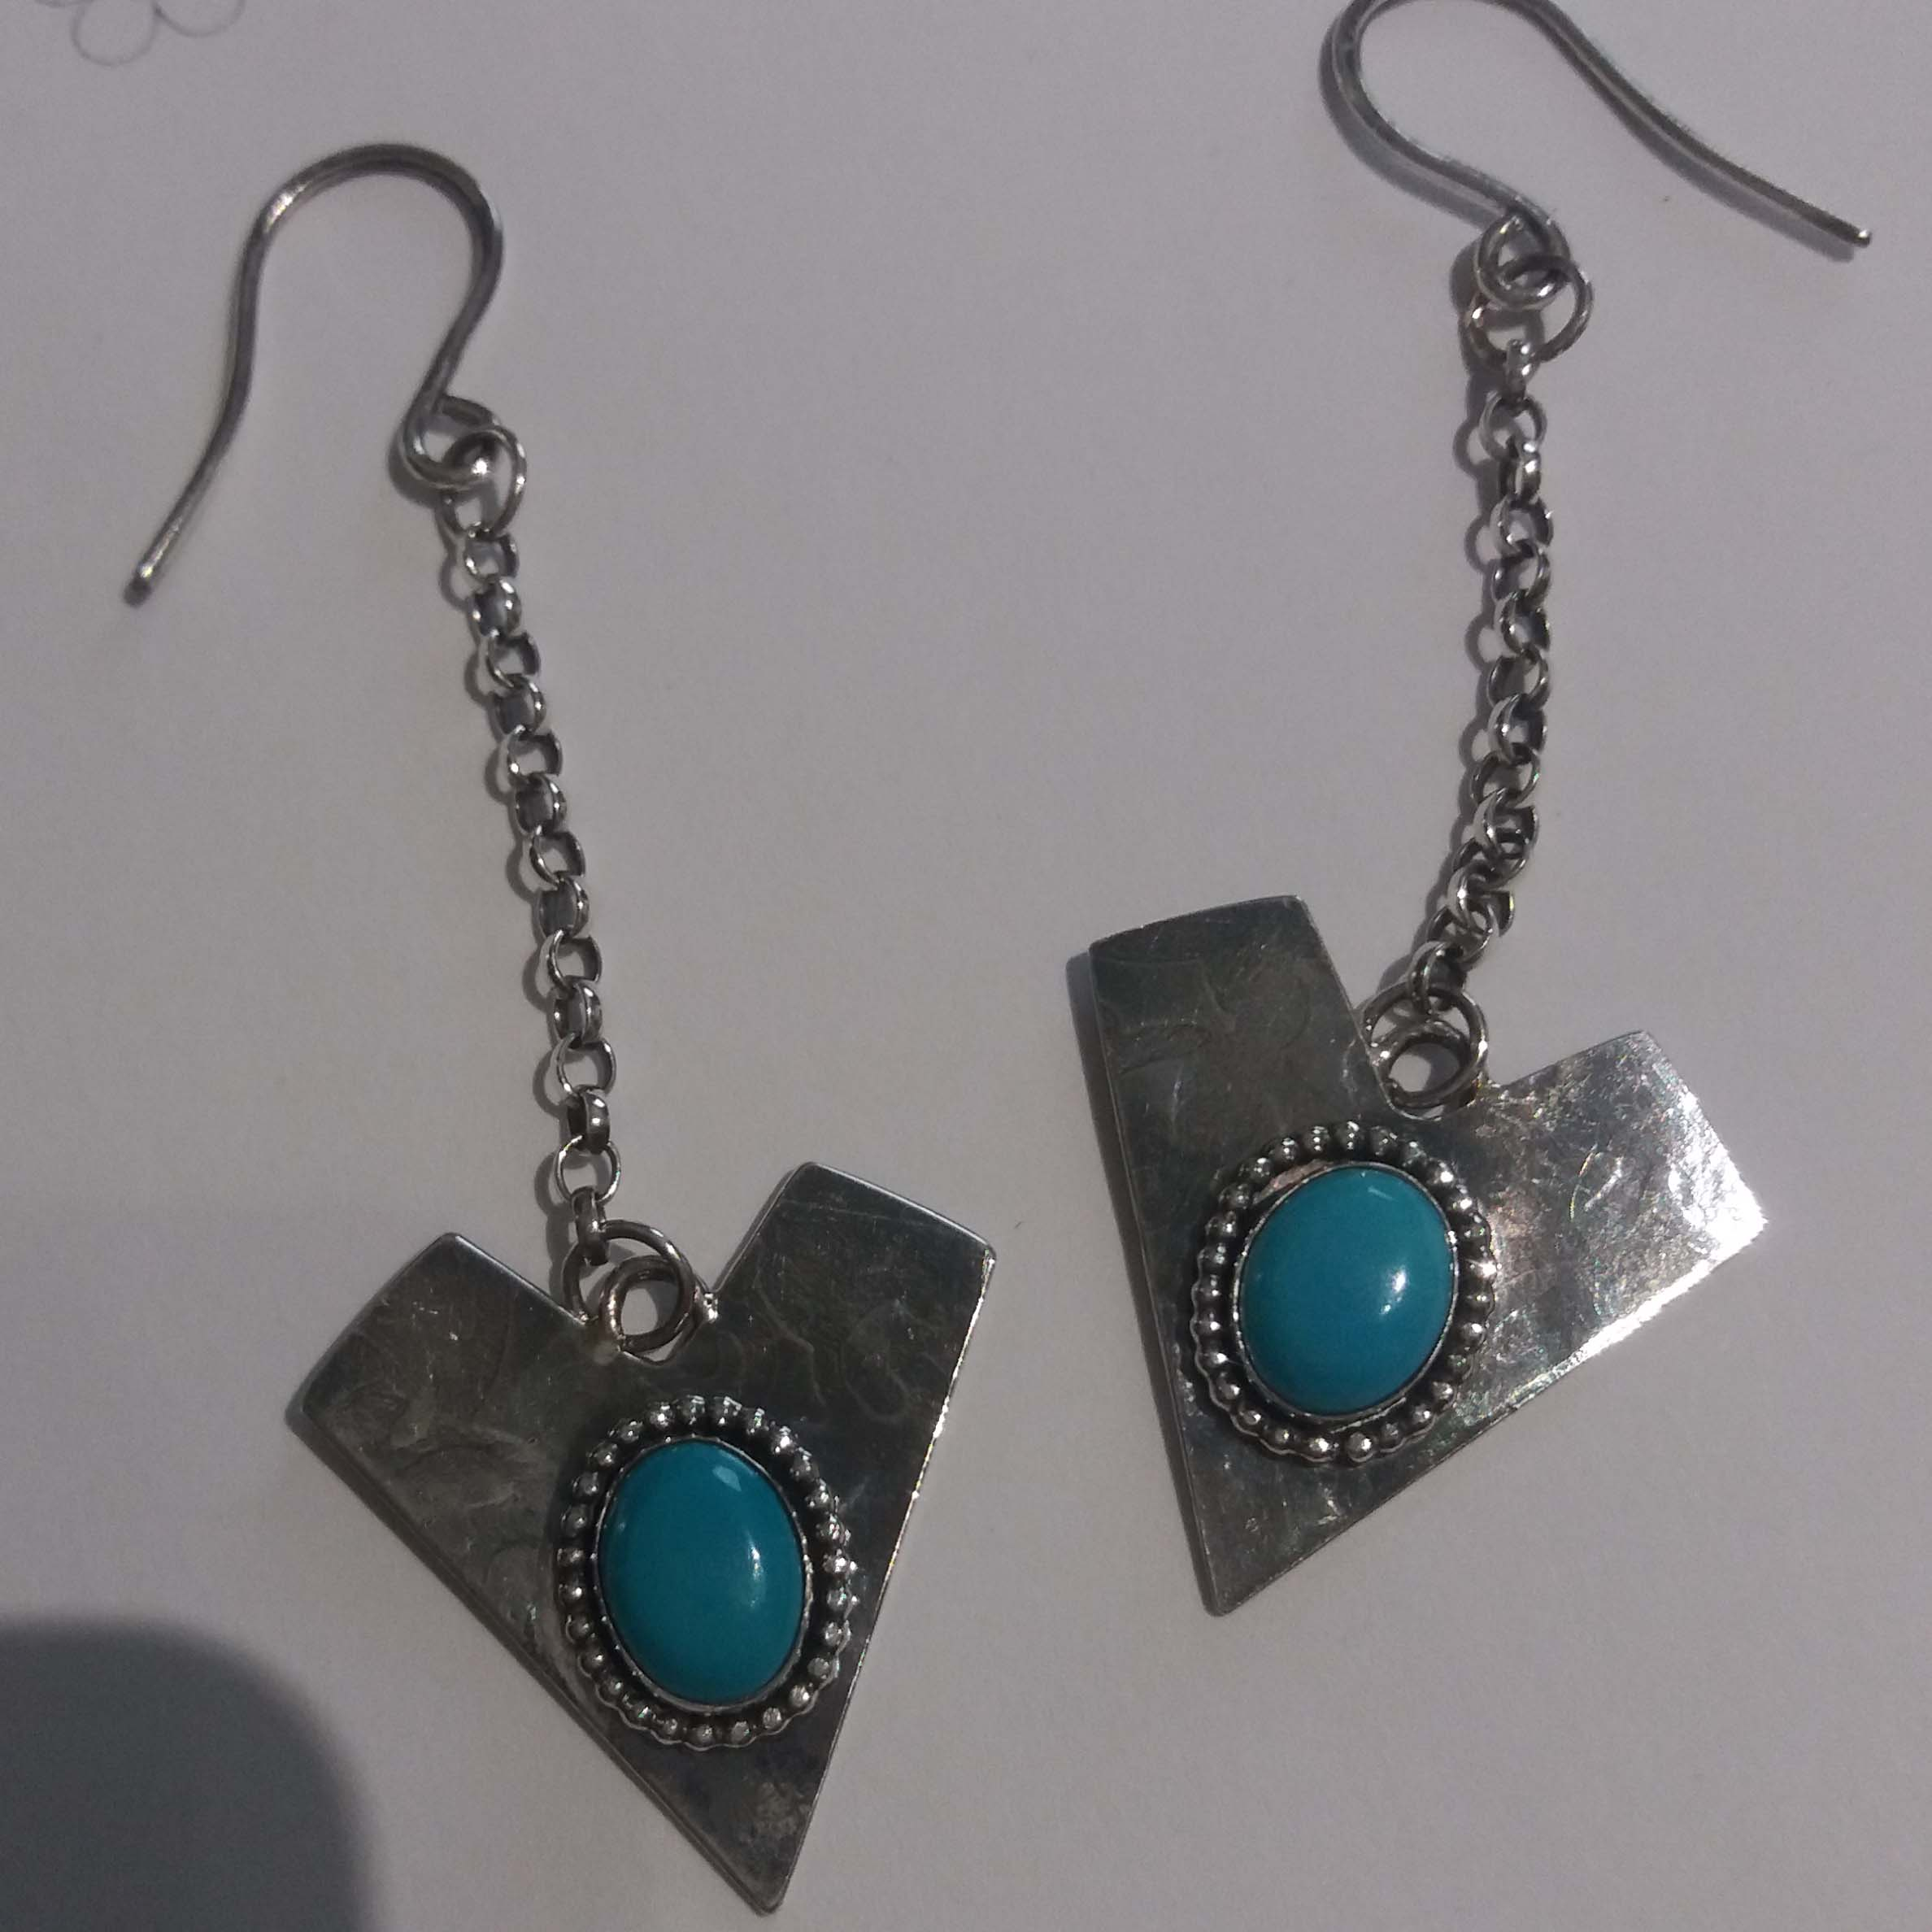 Arrow Design Embossed Chain Drop Earrings With Turquoise Cabochons